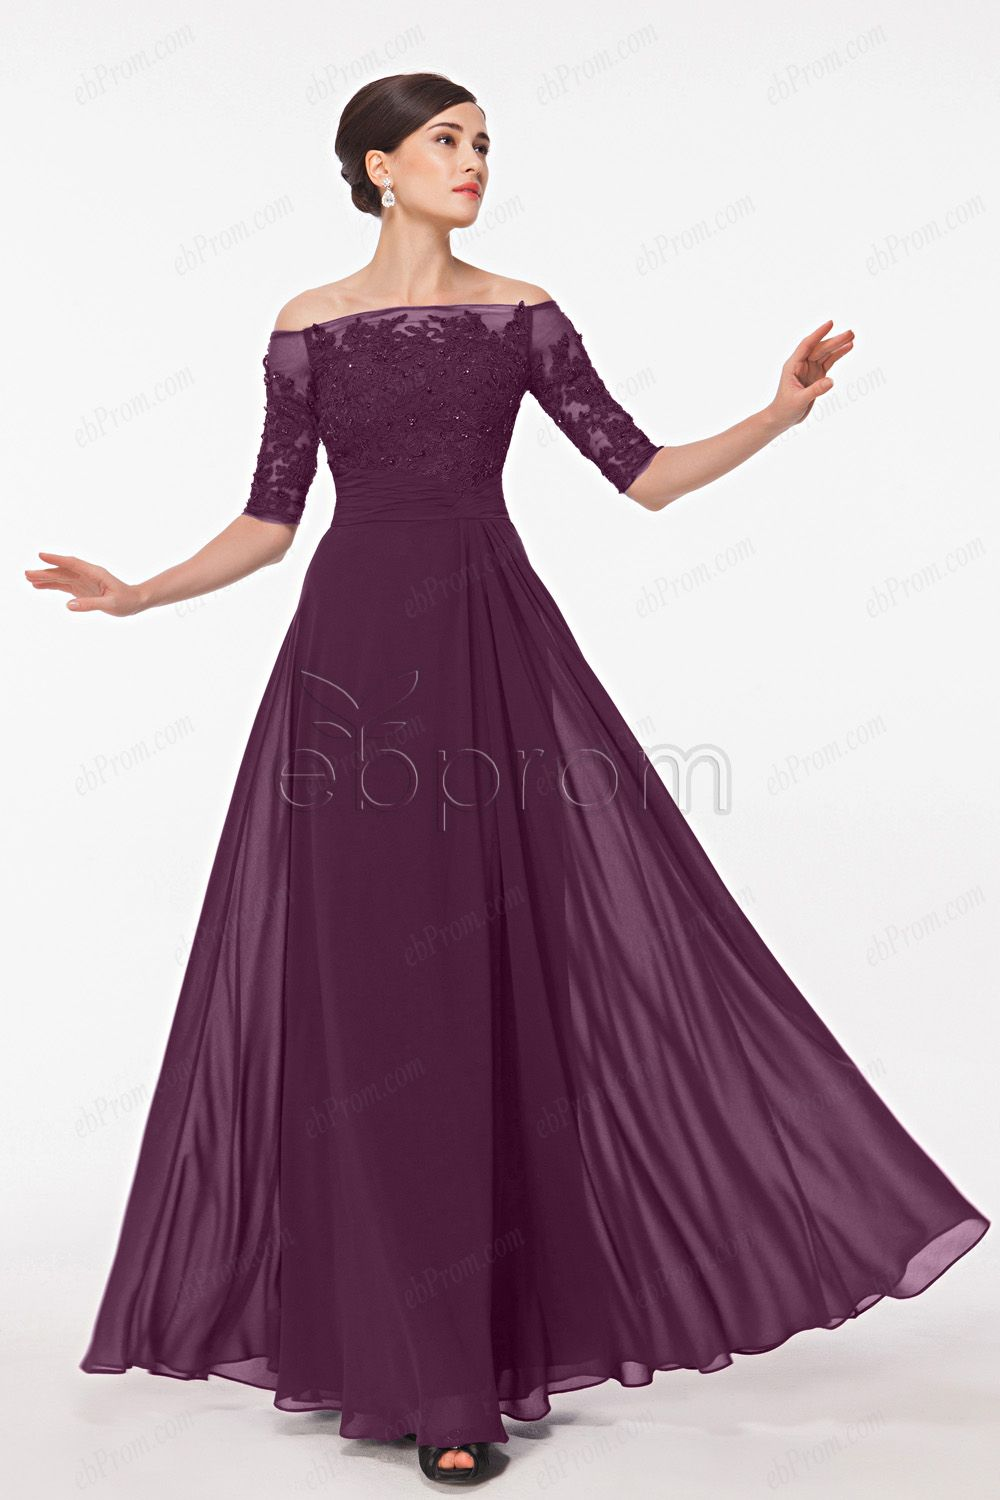 1/2 Sleeves Off the Shoulder Eggplant Mother of the Bride Dress ...